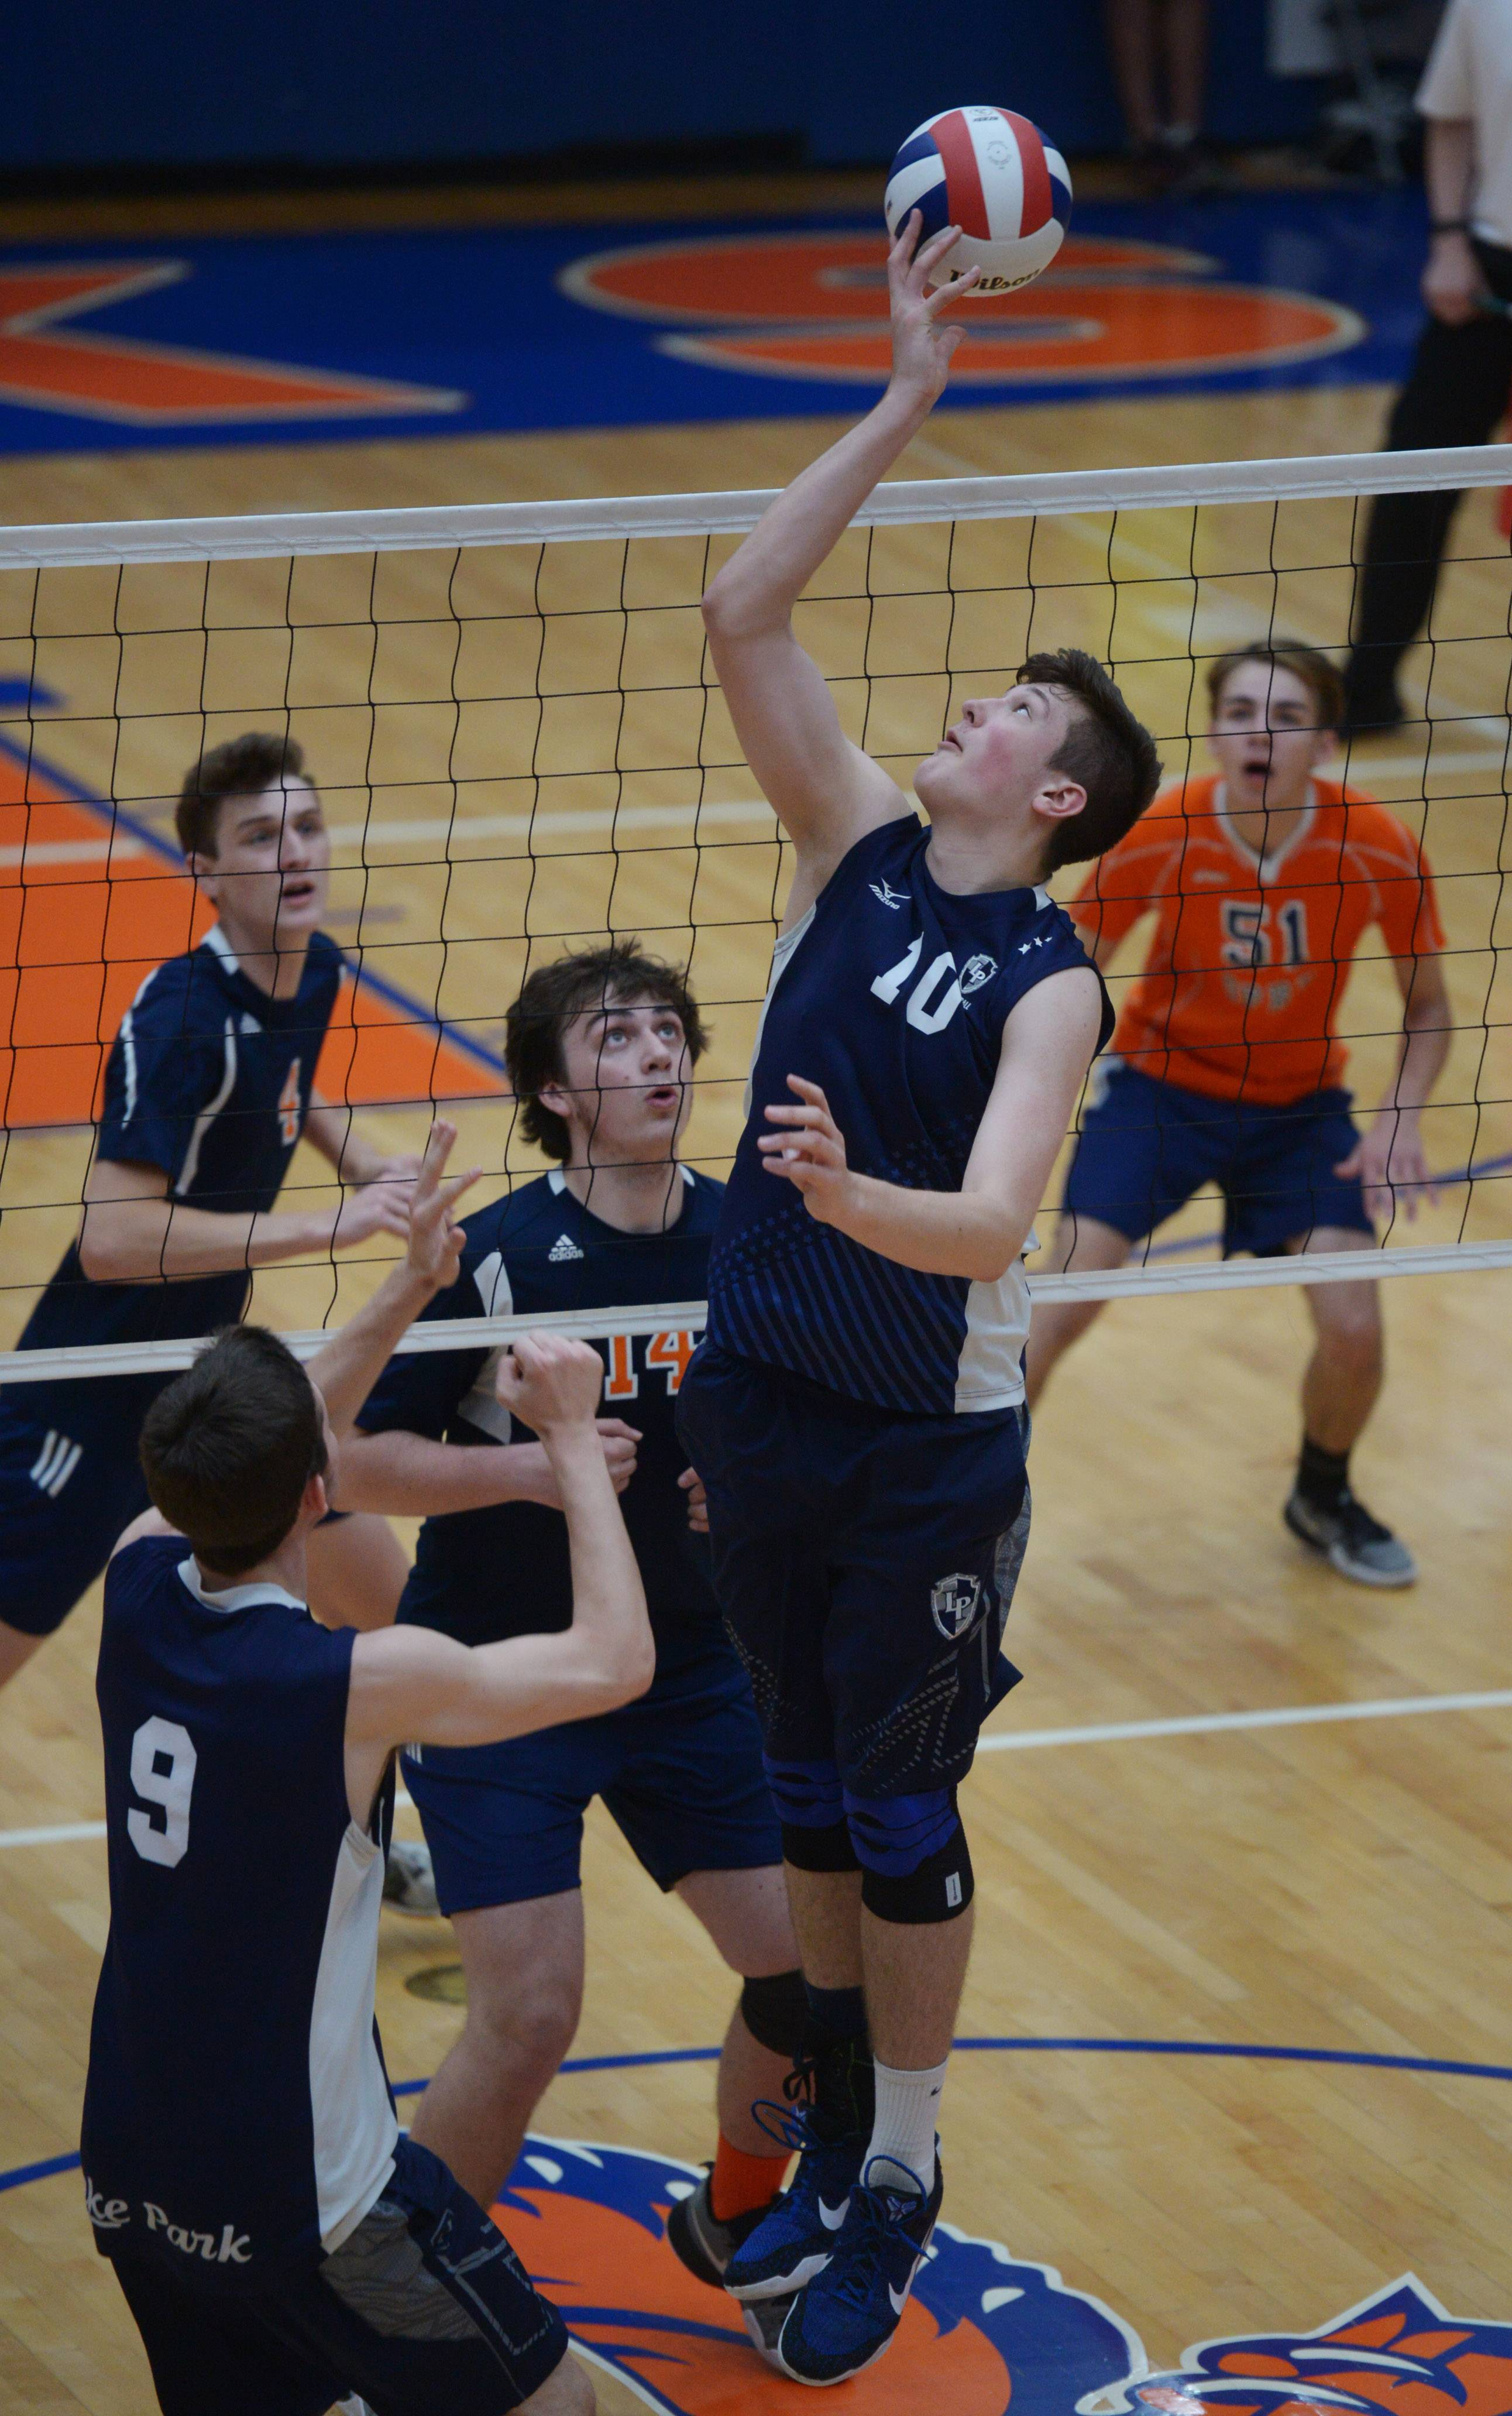 Lake Park setter Justin Yost (10) tips the ball backward over the net in front of Oak Park-River Forest's Ben Shinners (14) during the boys volleyball state quarterfinals at Hoffman Estates High School Friday.